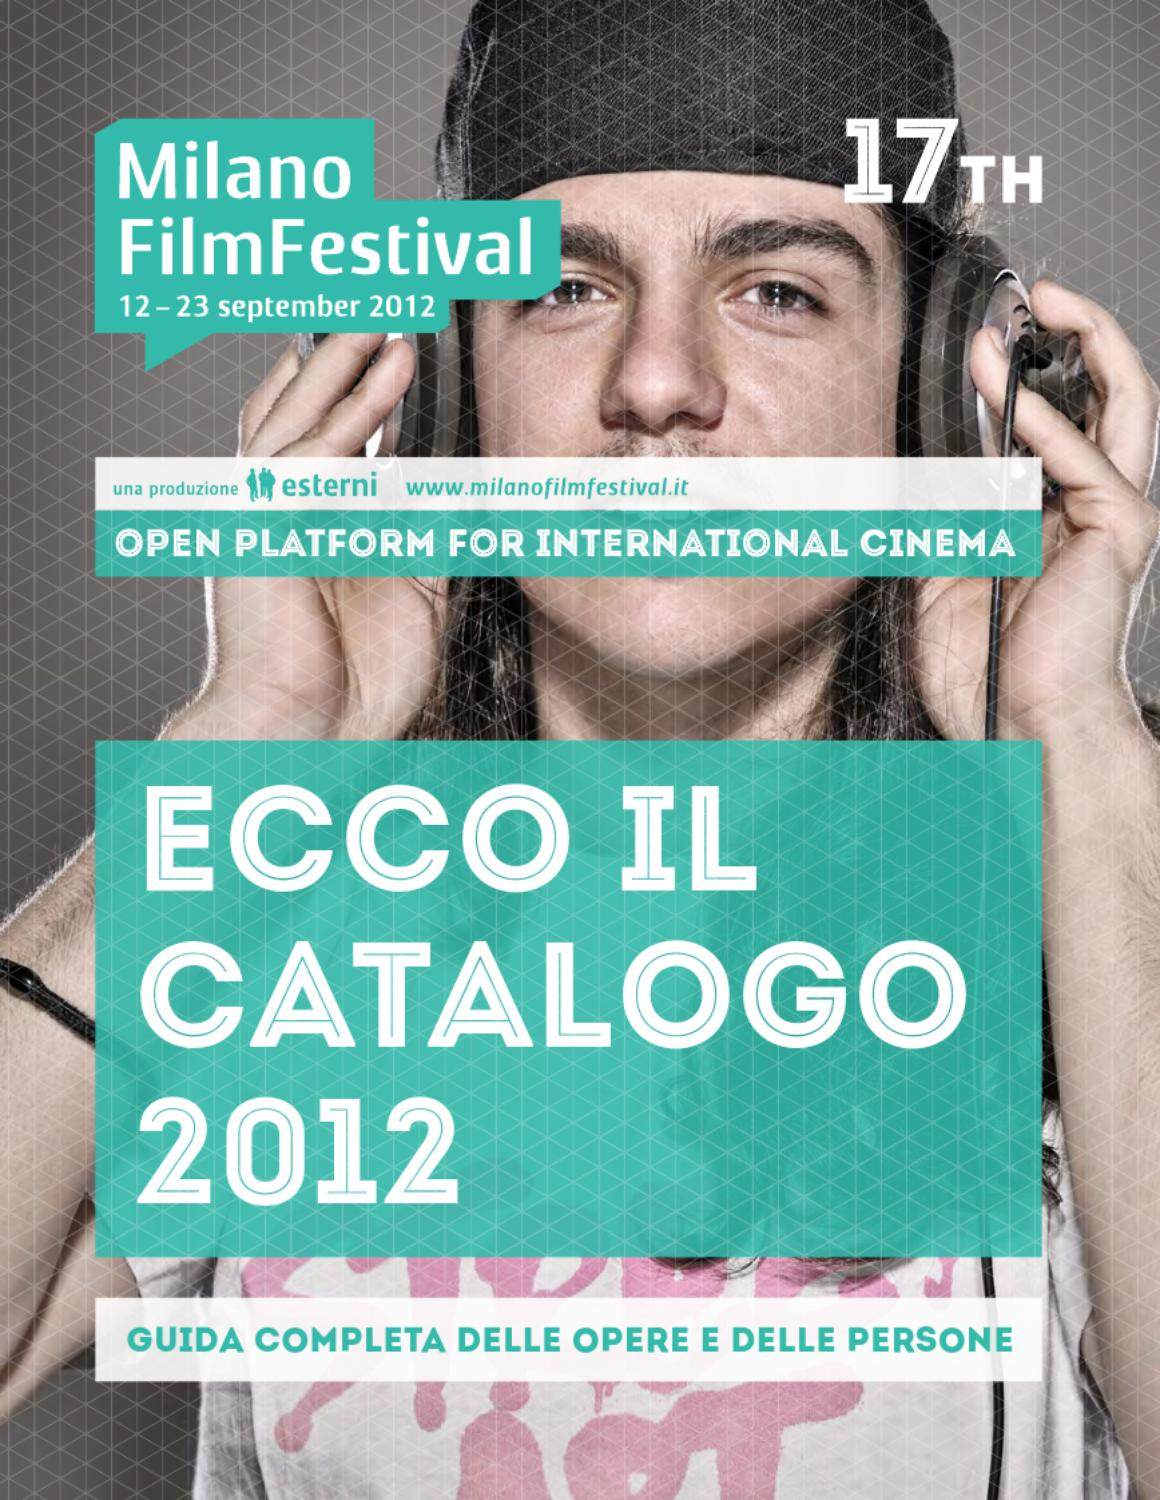 Catalogo MFF 2012 by Milano Film Festival - issuu 3b1ec97fbf6